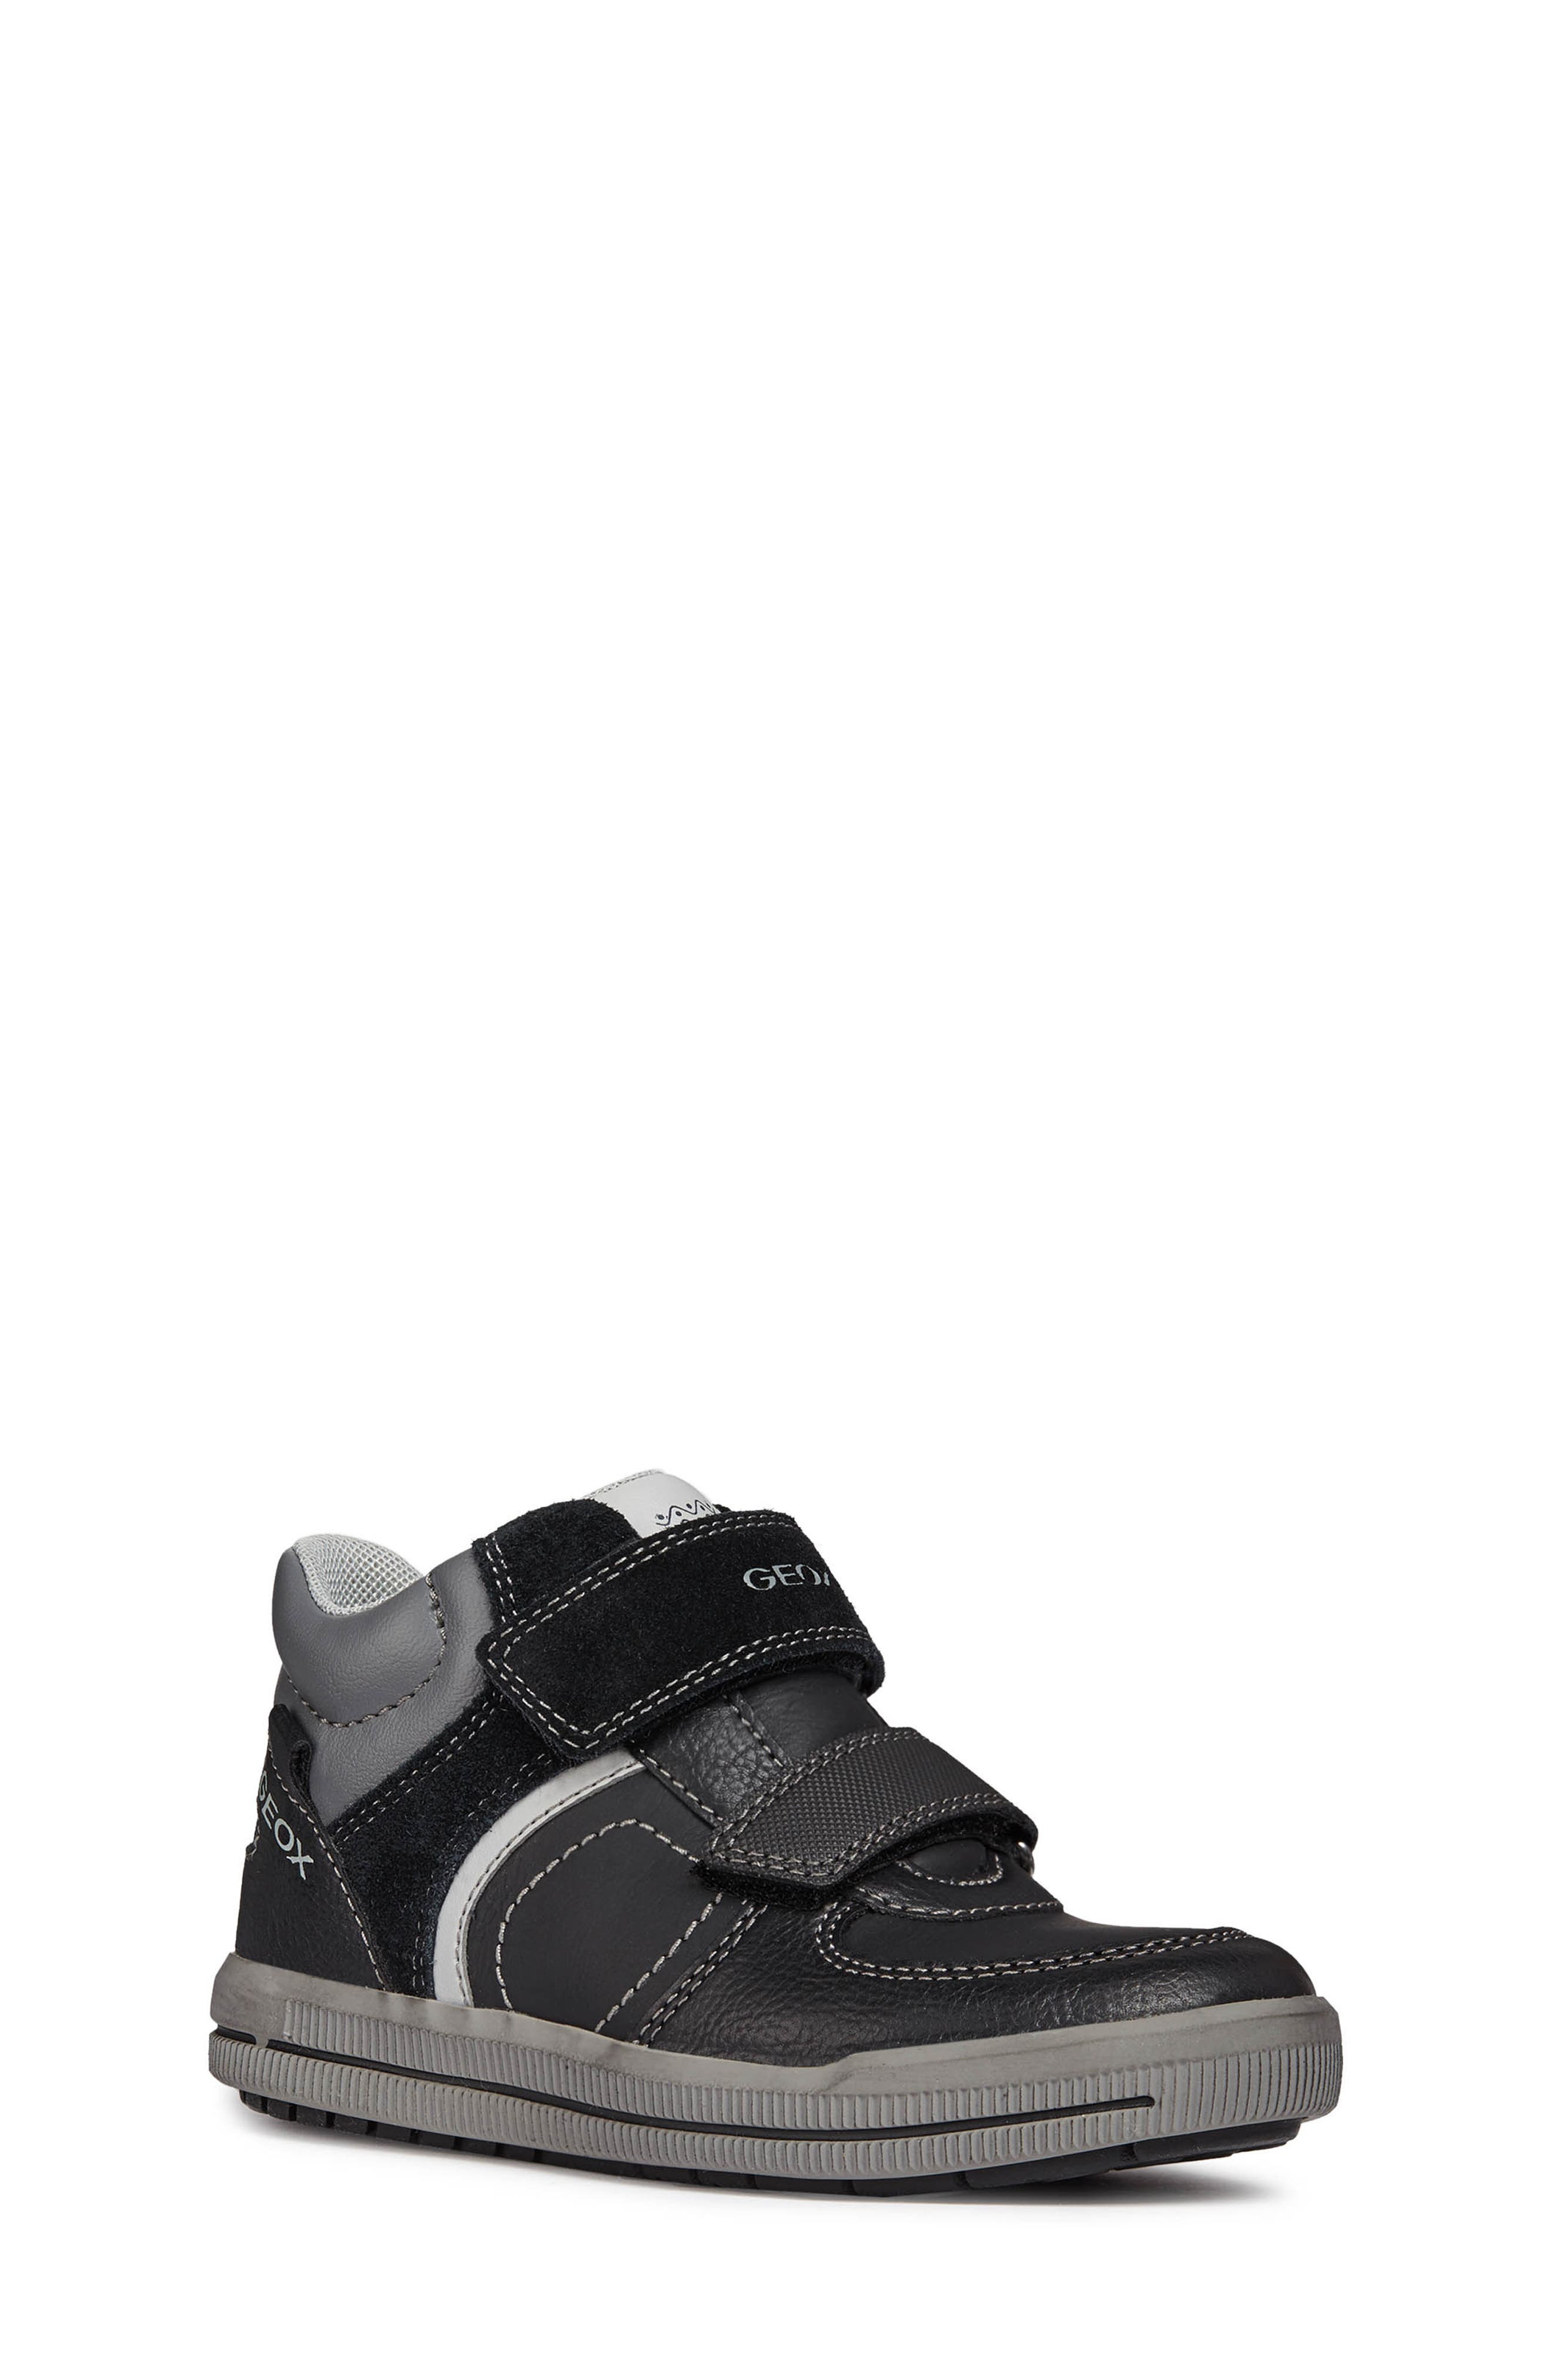 Arzach High-Top Sneaker,                         Main,                         color, BLACK/DARK GREY